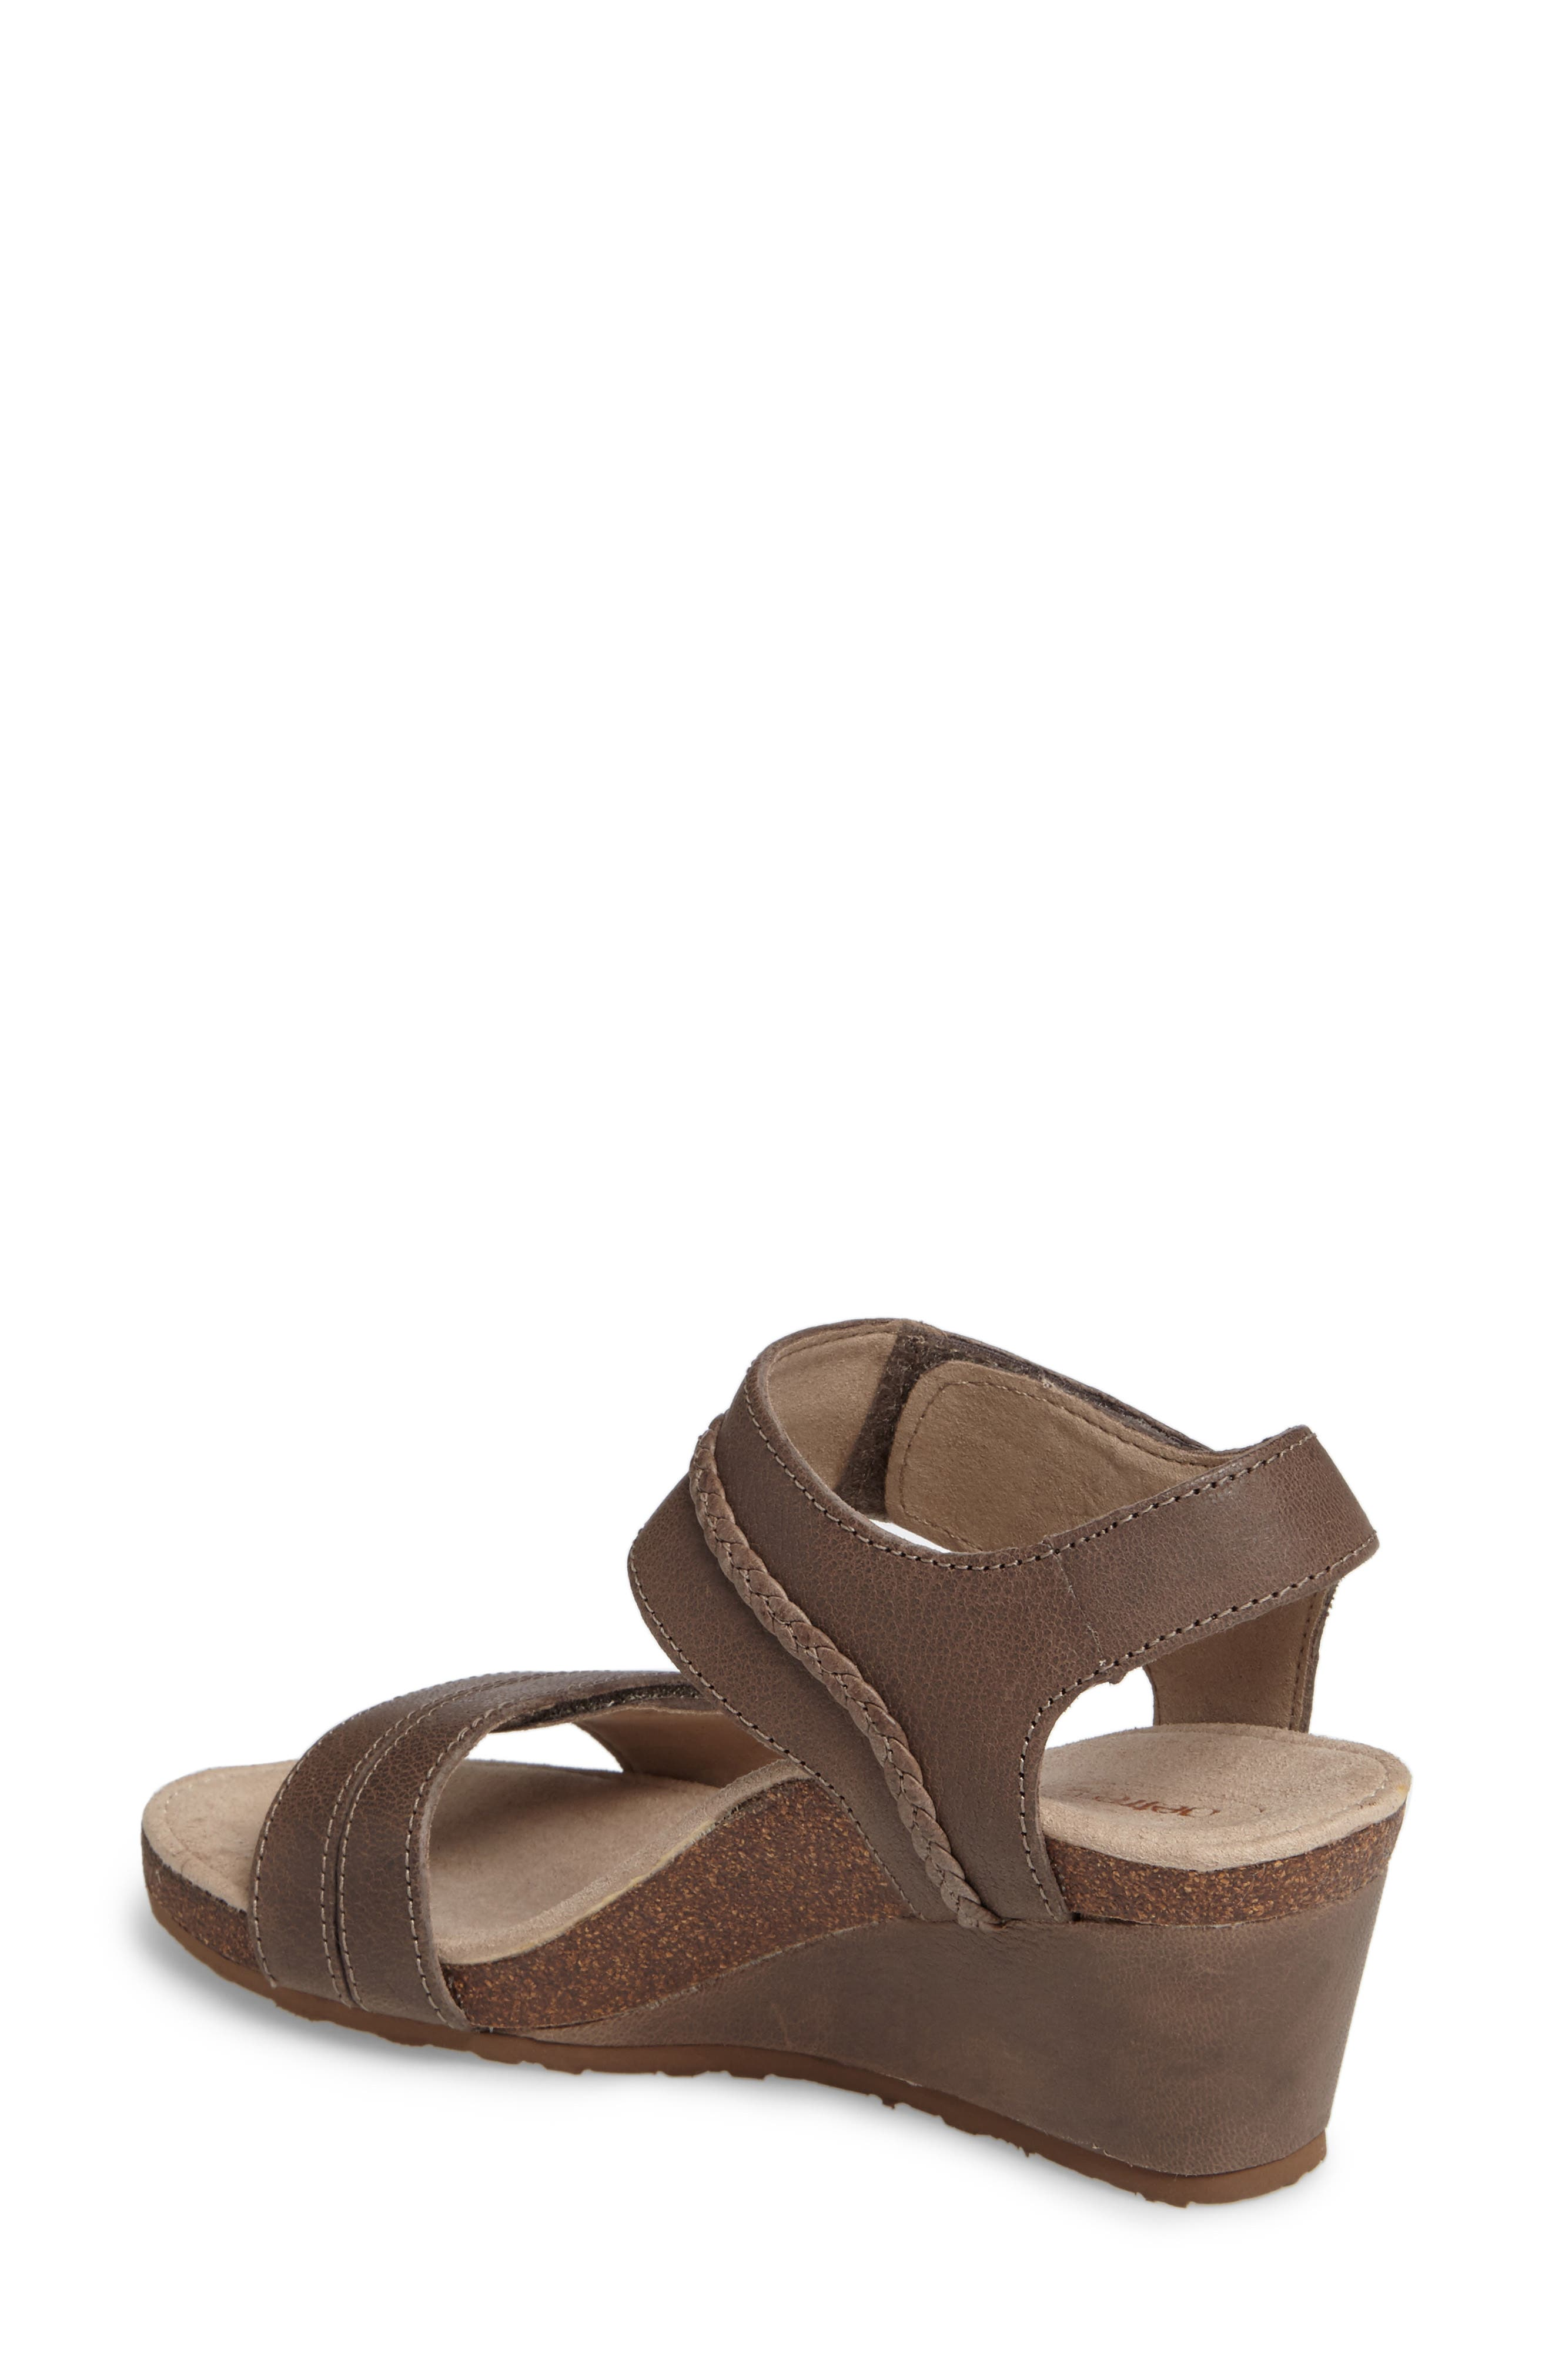 'Arielle' Leather Wedge Sandal,                             Alternate thumbnail 2, color,                             STONE LEATHER